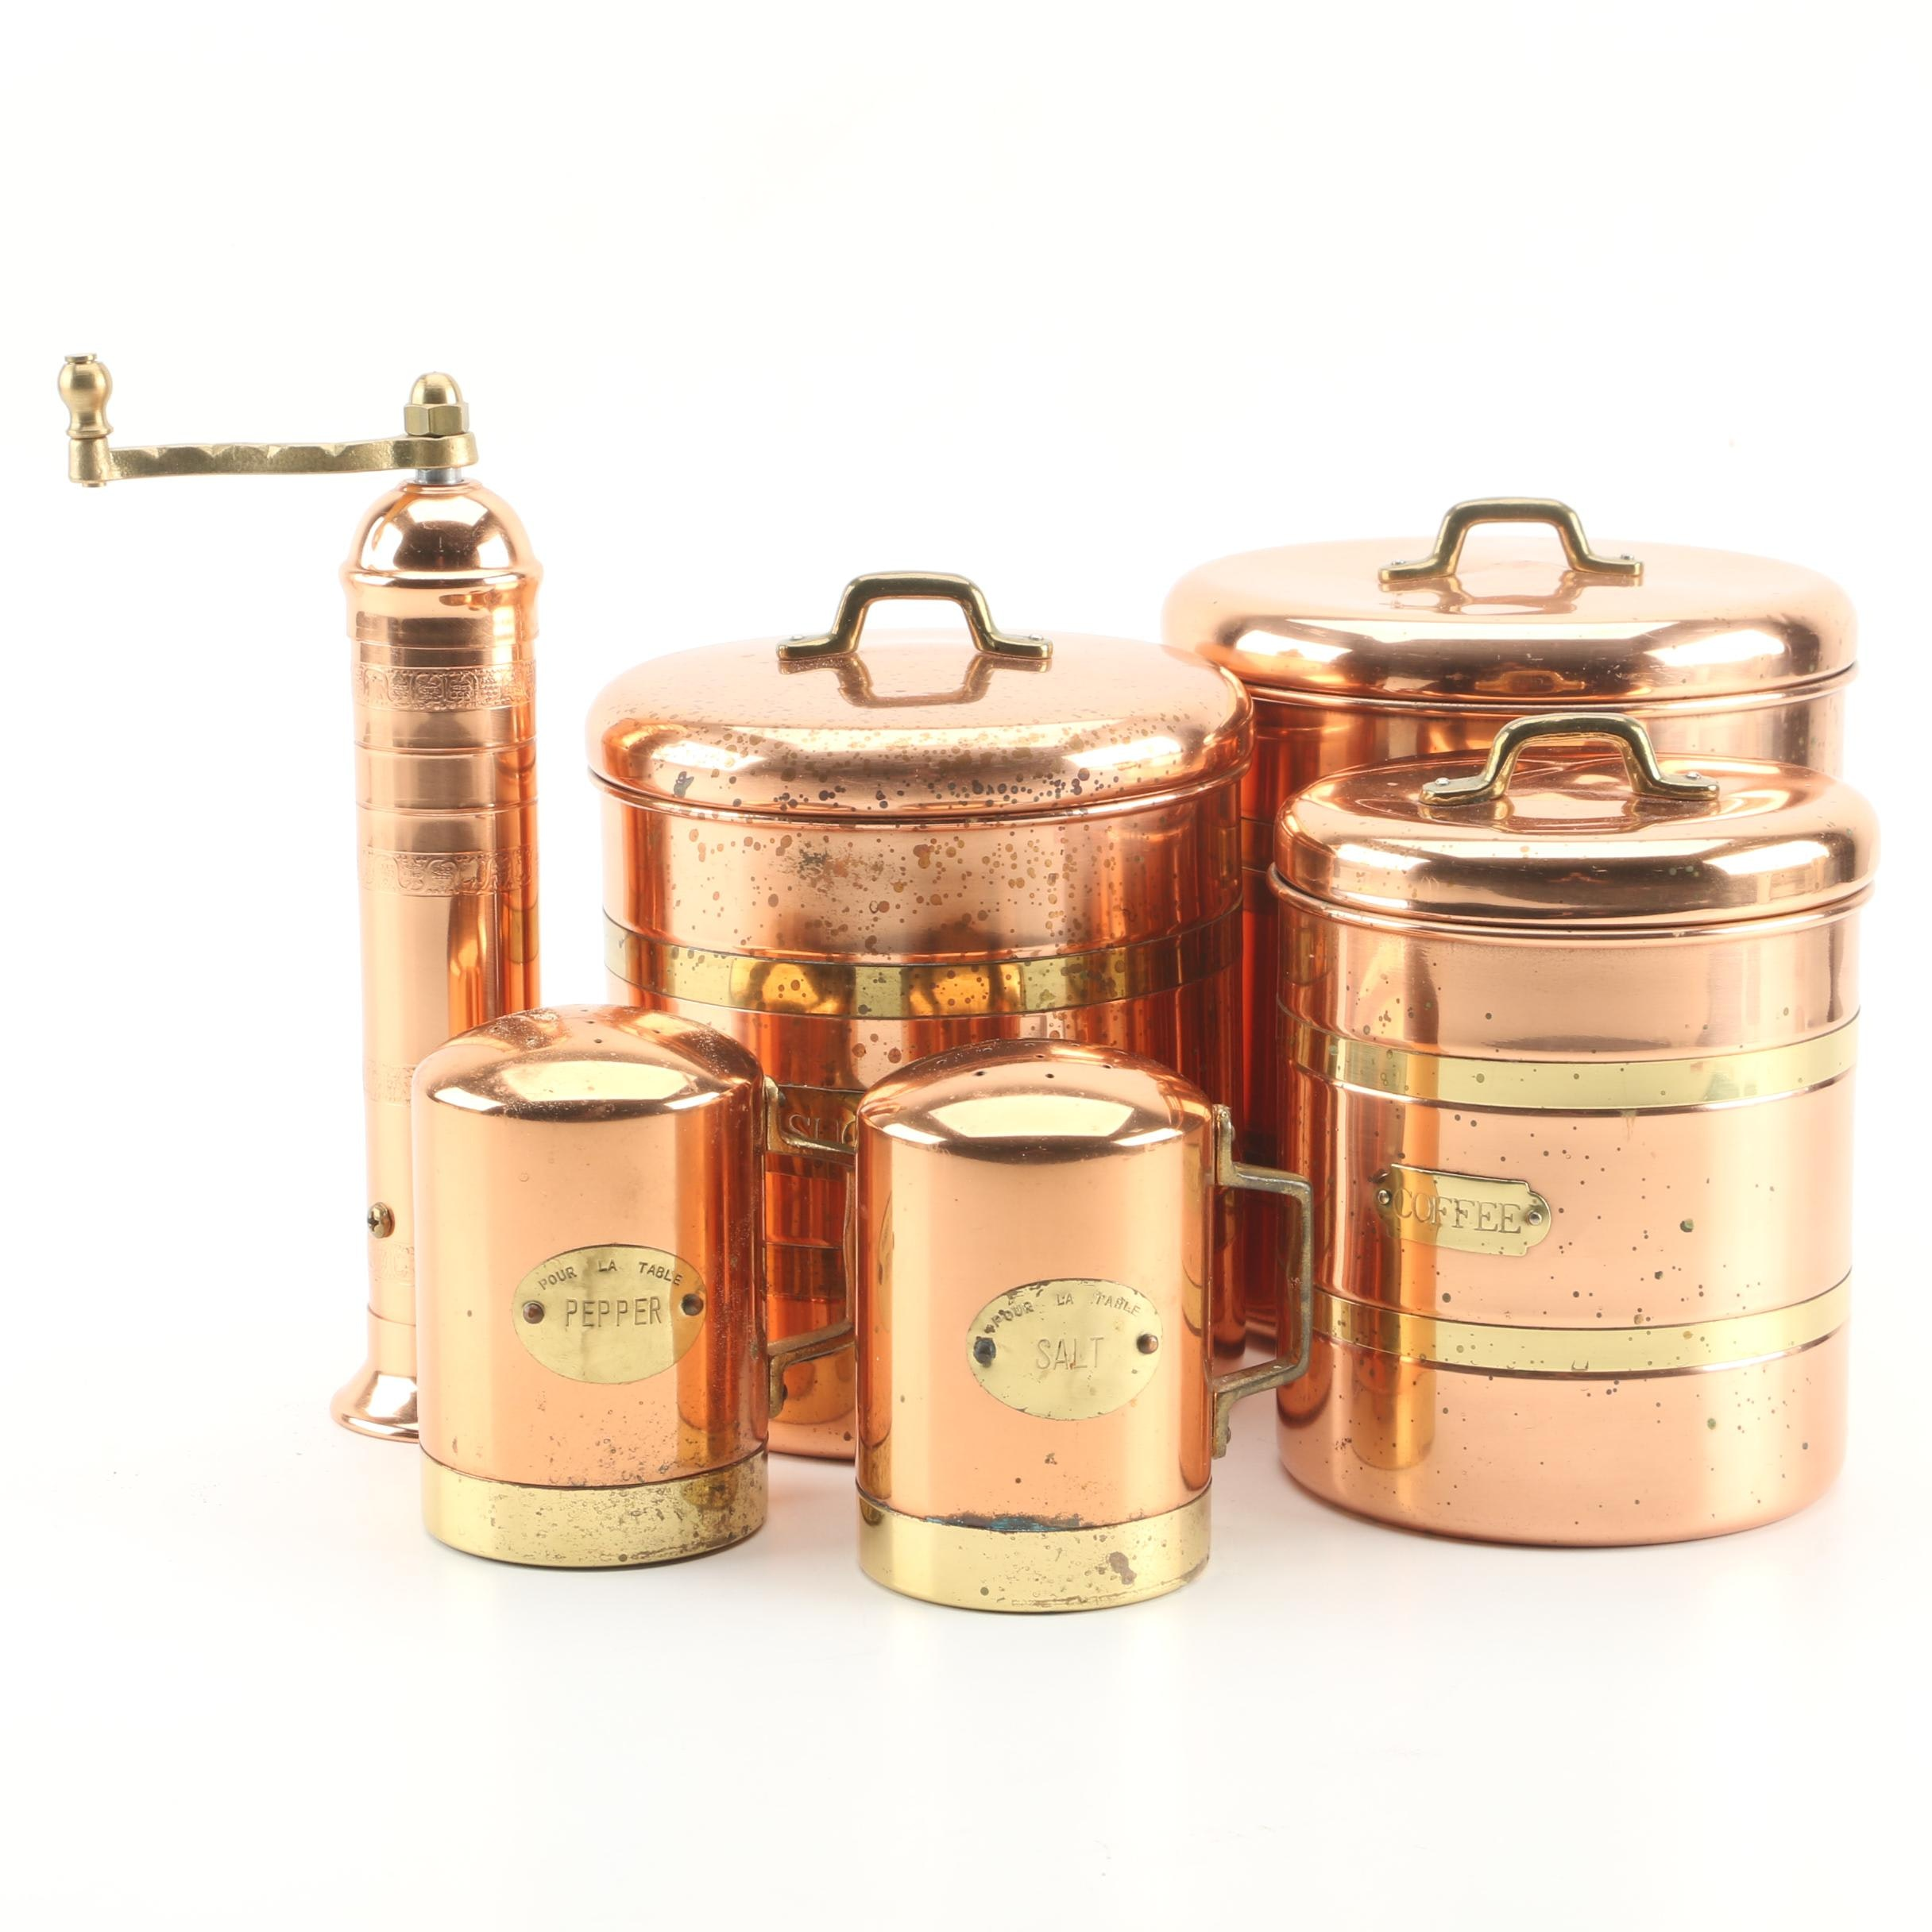 Copper and Brass Canisters Including a Pepper Mill and Salt and Pepper Shakers